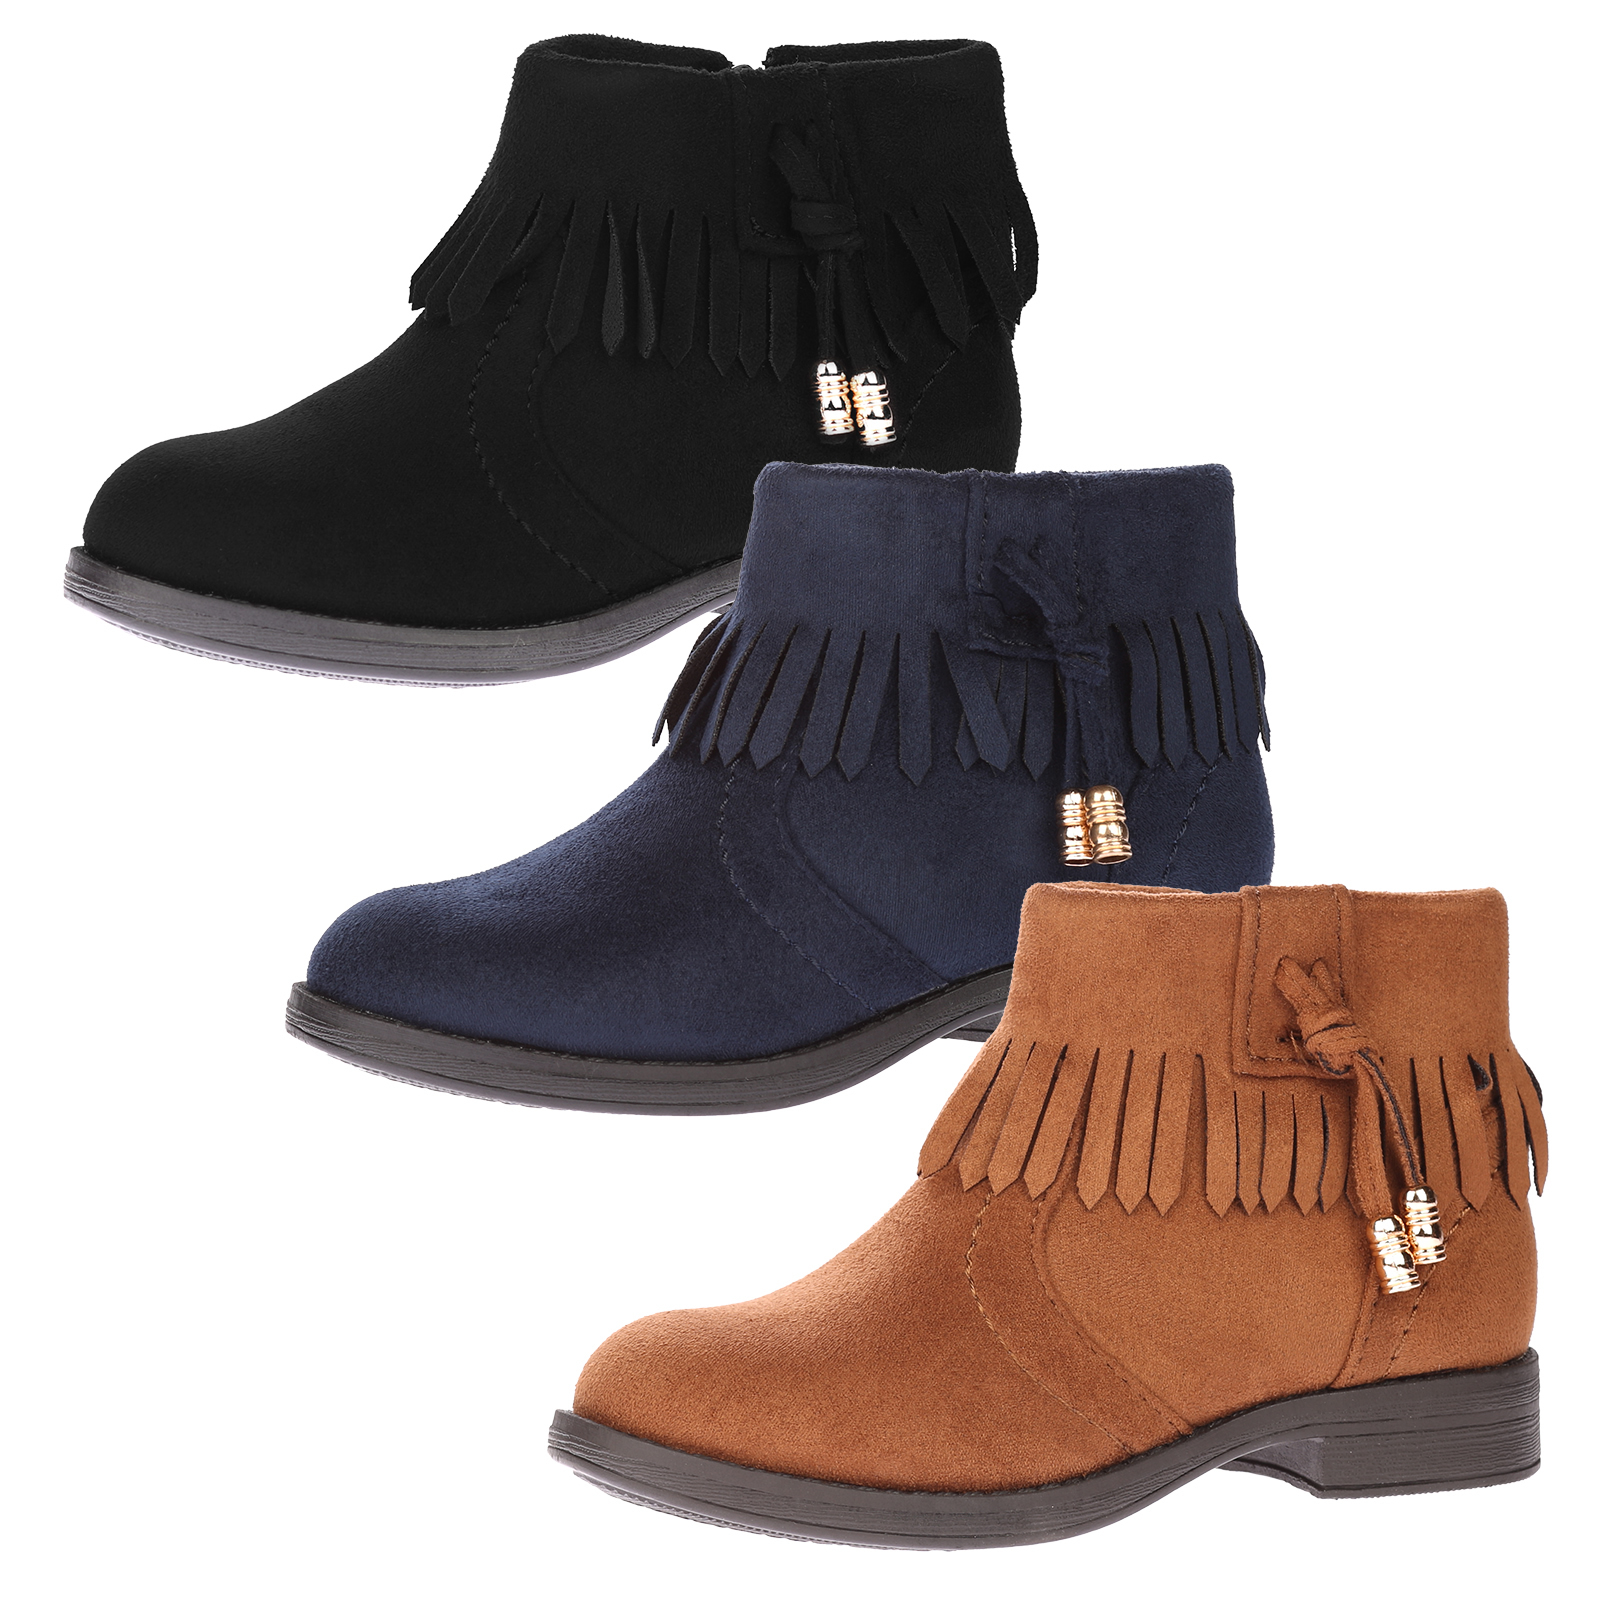 A wide selection of affordable, hardwearing and fashionable girls boots. We stock ankle and knee high, flat and heeled boots for girls. Free UK delivery.